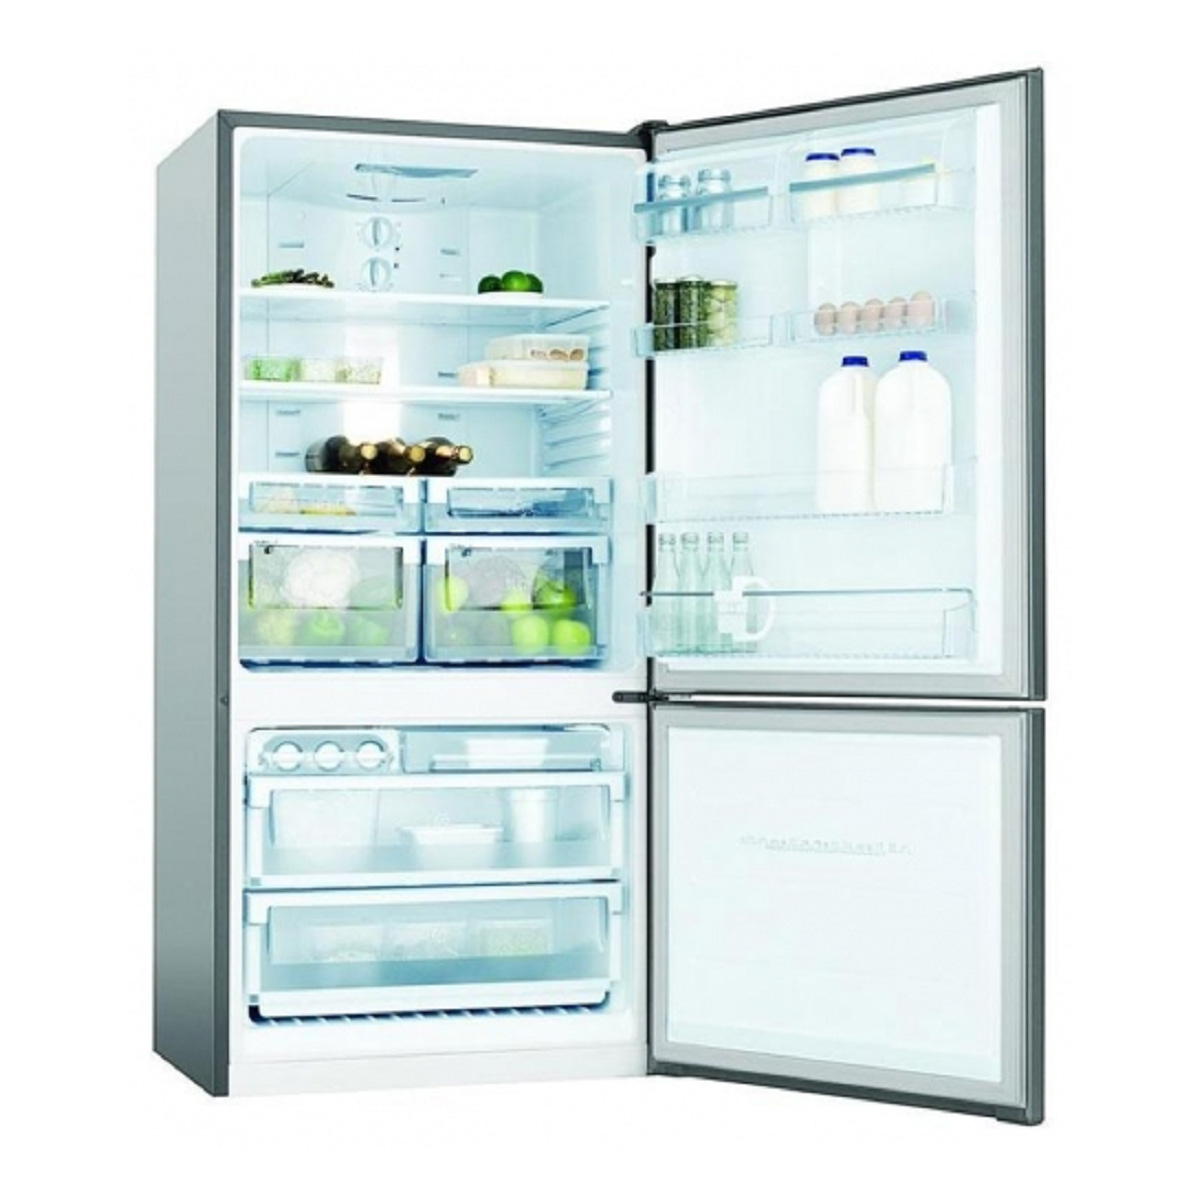 Electrolux 430L Bottom Mount Fridge EBM4307SC-L 38850